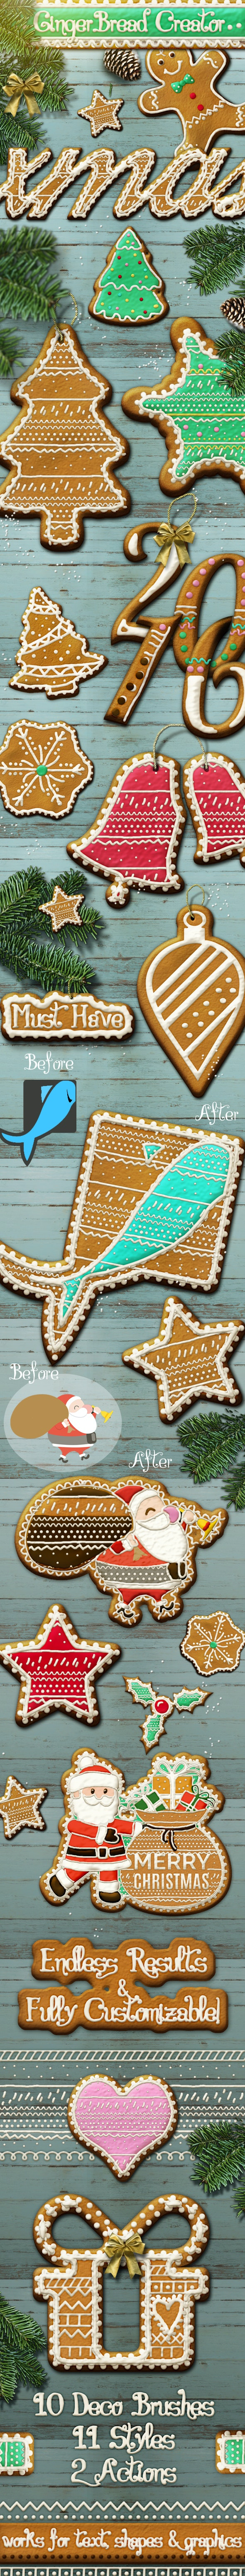 Gingerbread Christmas Style Photoshop Creator - Text Effects Actions